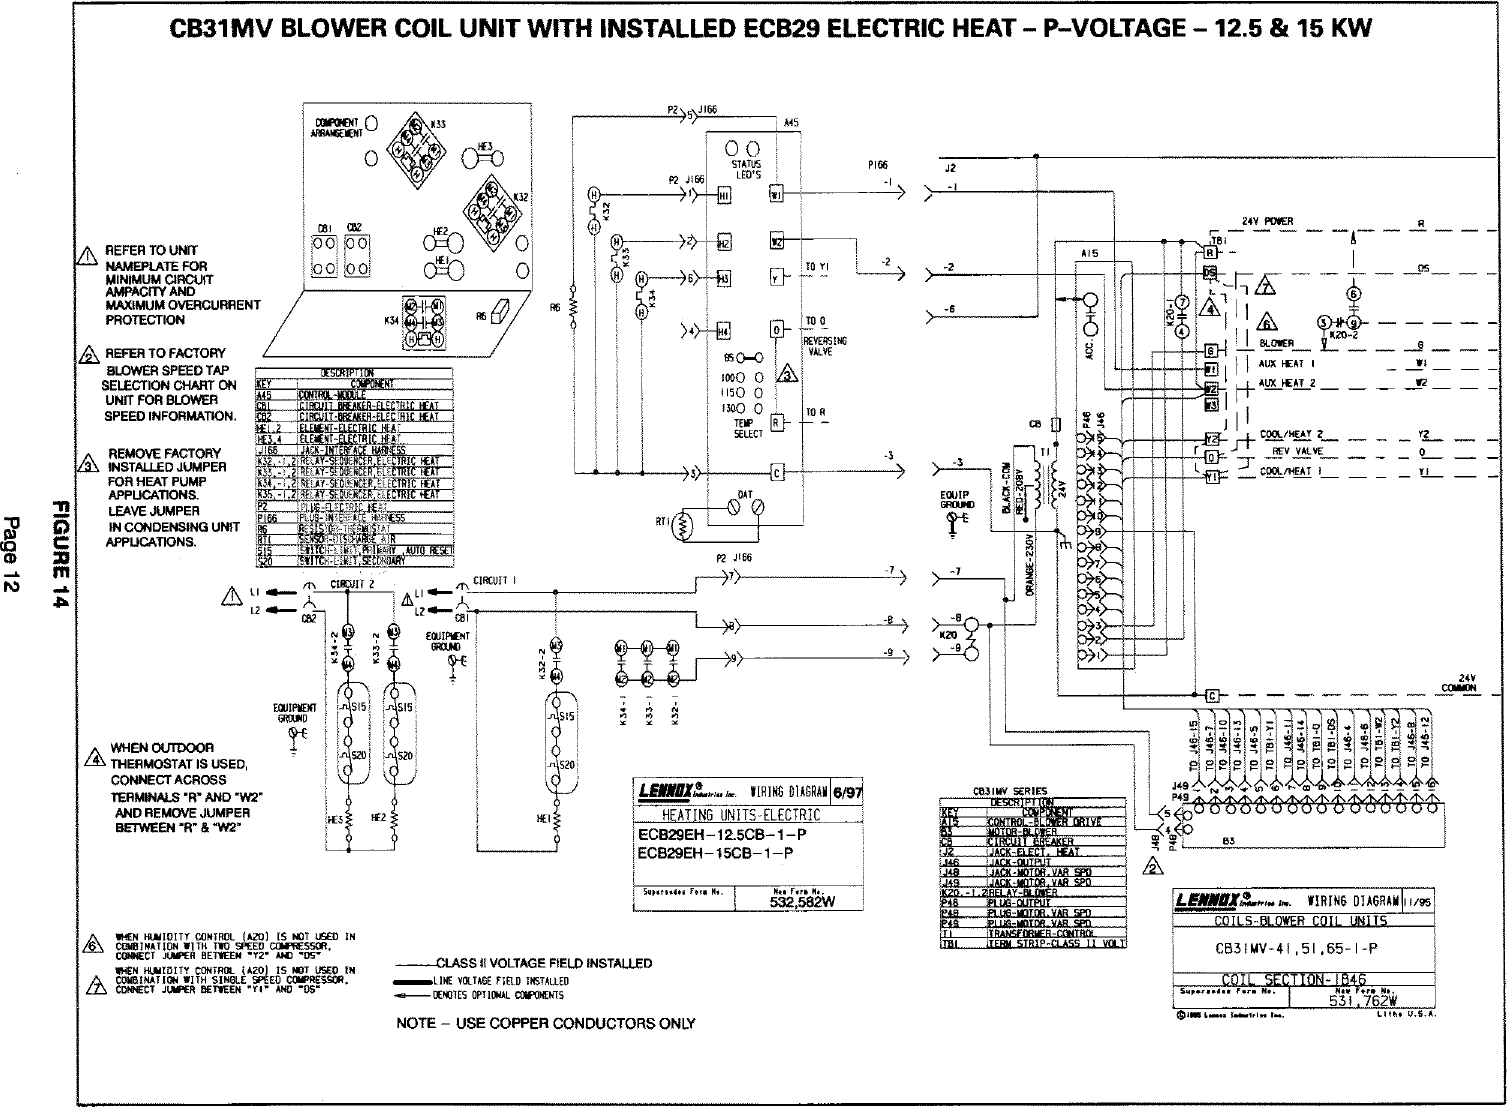 Wiring Diagram For Lennox Airhandlers